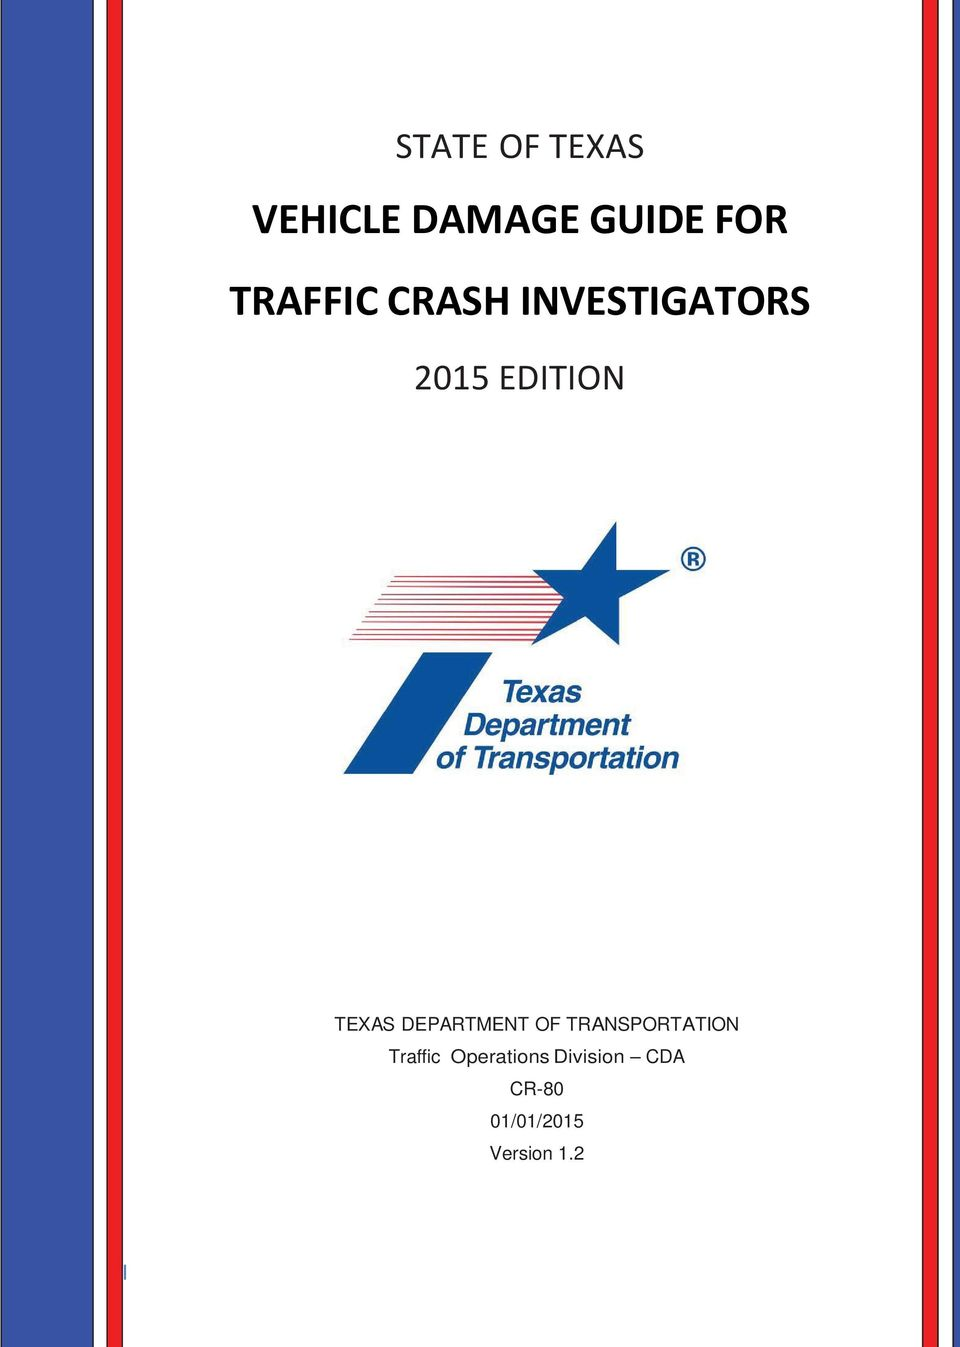 TEXAS DEPARTMENT OF TRANSPORTATION Traffic